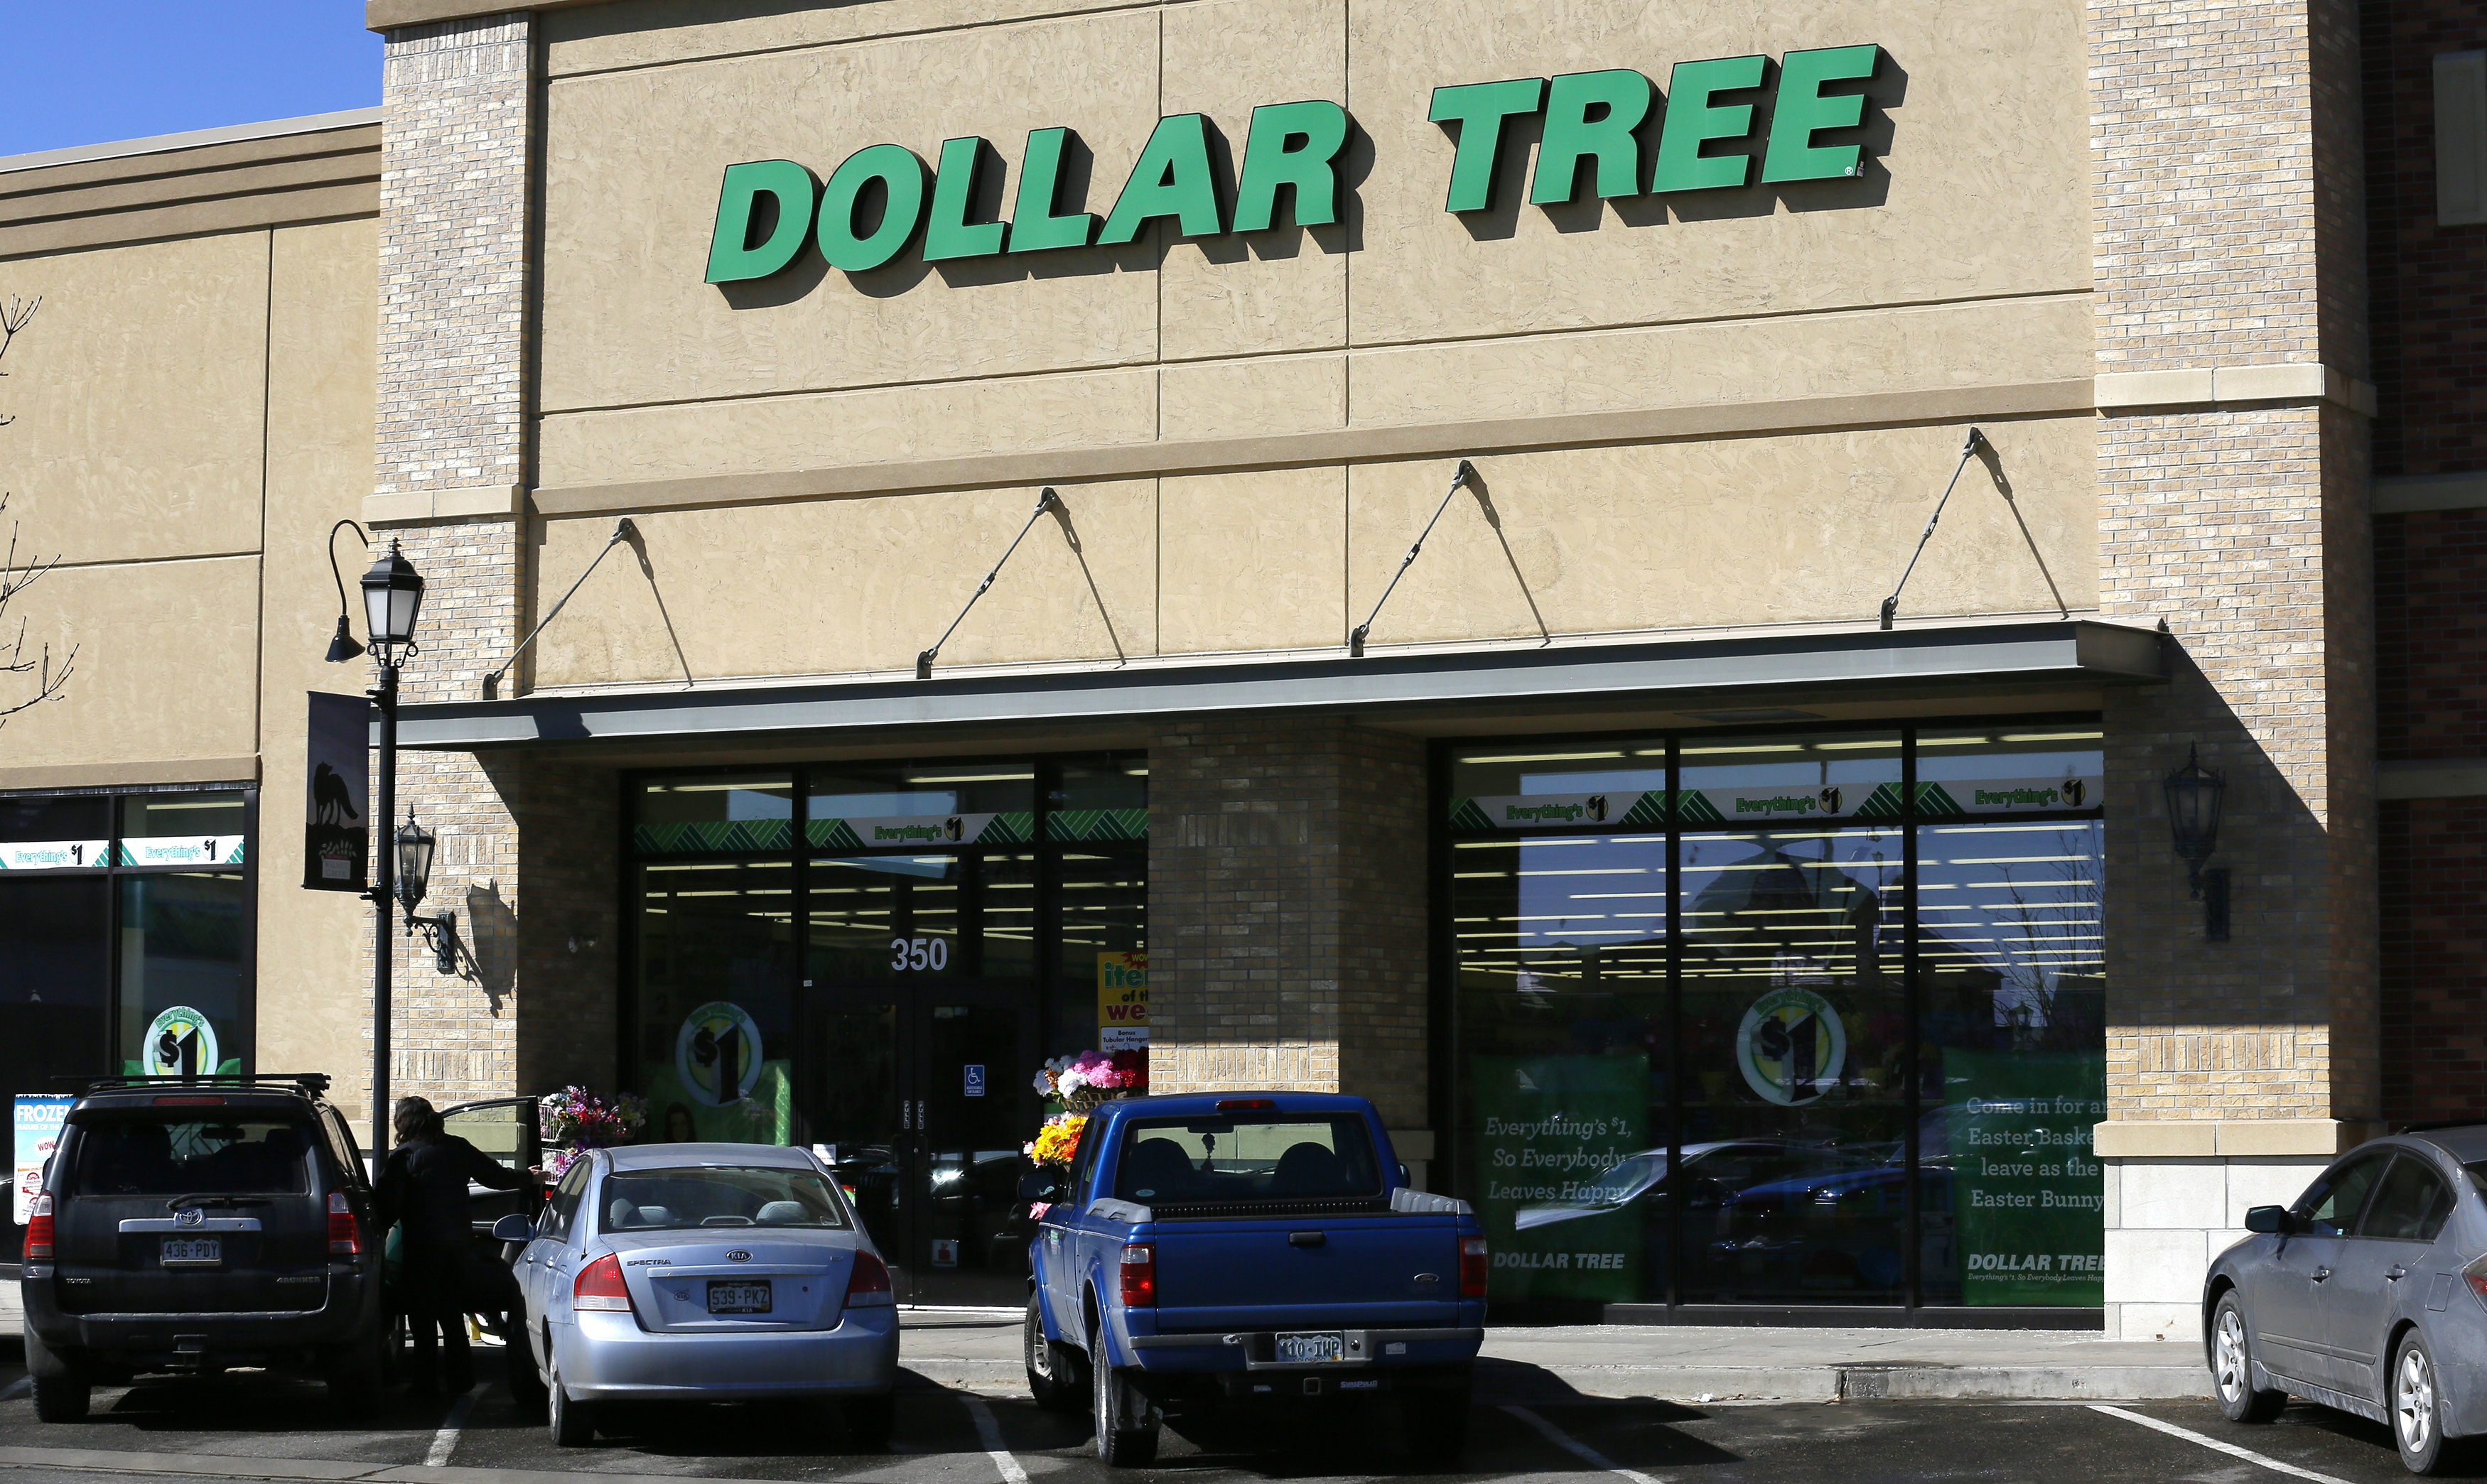 The exterior of a Dollar Tree store in Westminster, Colorado on February 26, 2014.